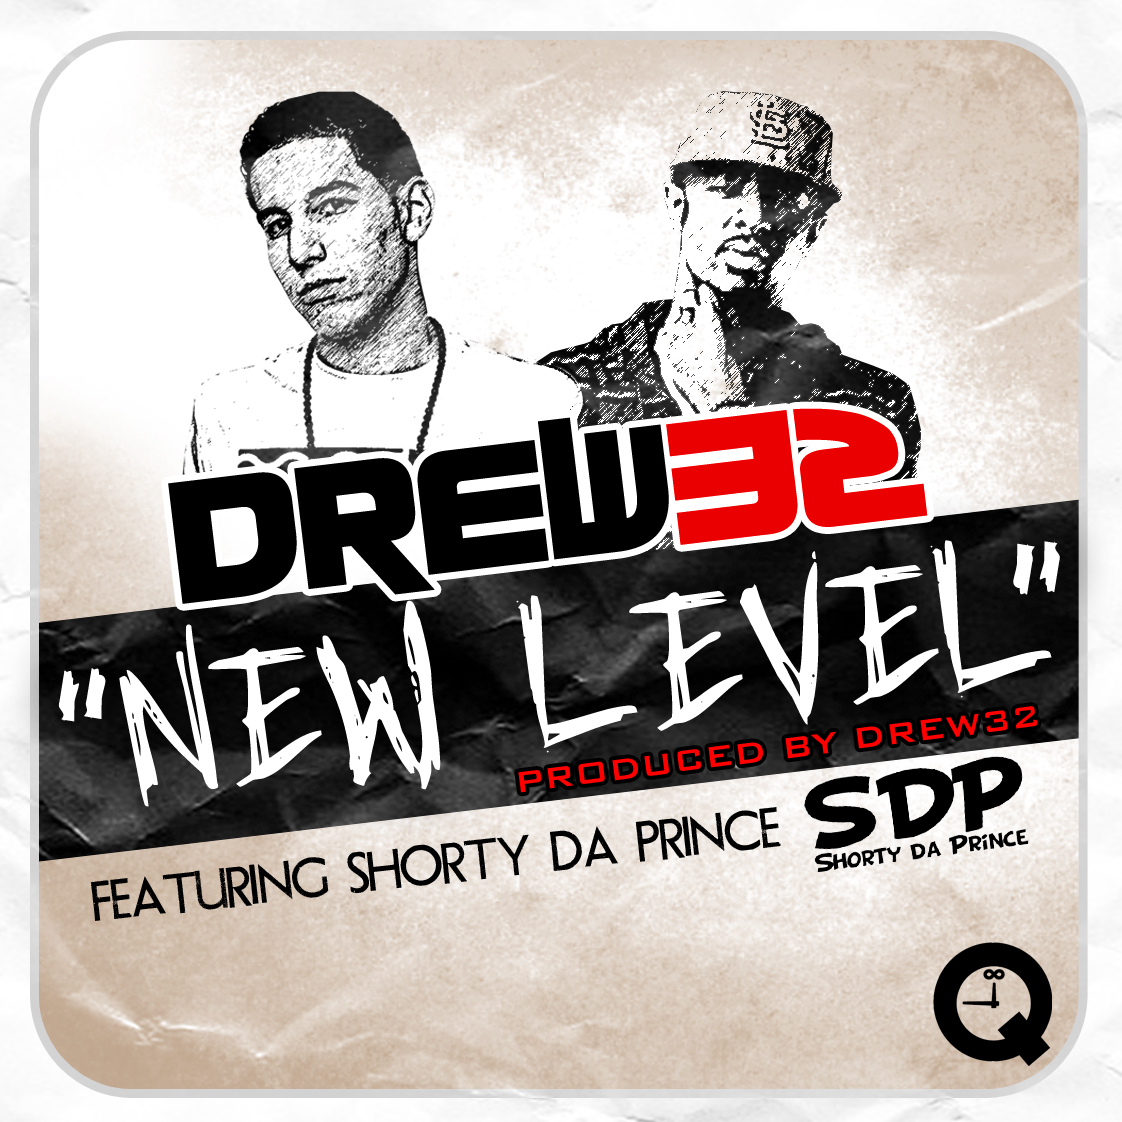 Drew32 ft. Shorty Da Prince - New Level 2012